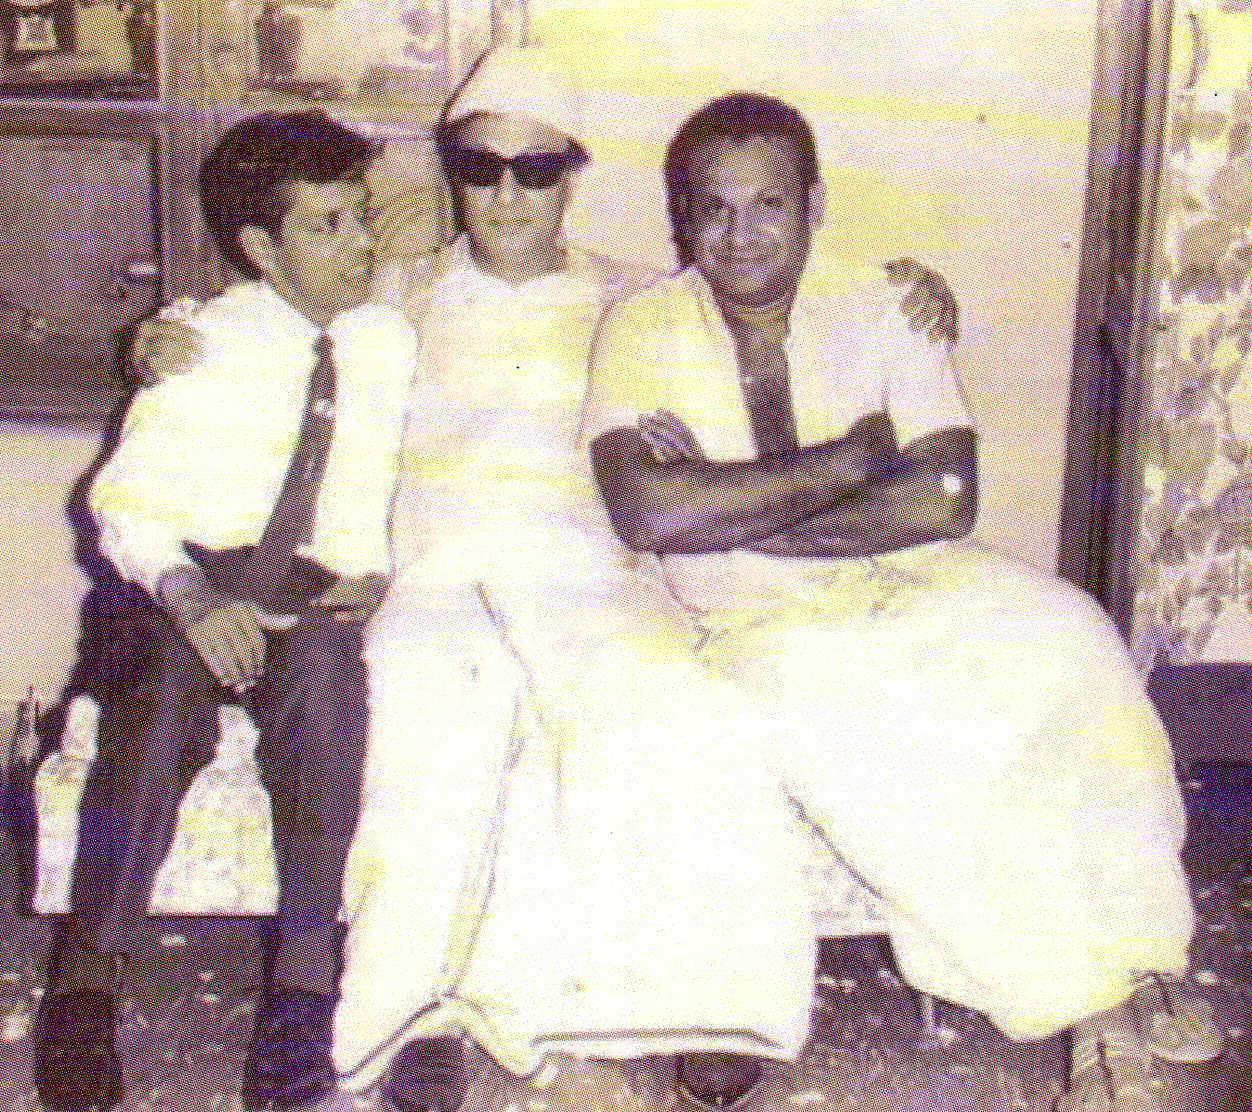 MGR with comedian C.K.Nagesh (to his right) and actor S.A. Asokan (to his left)